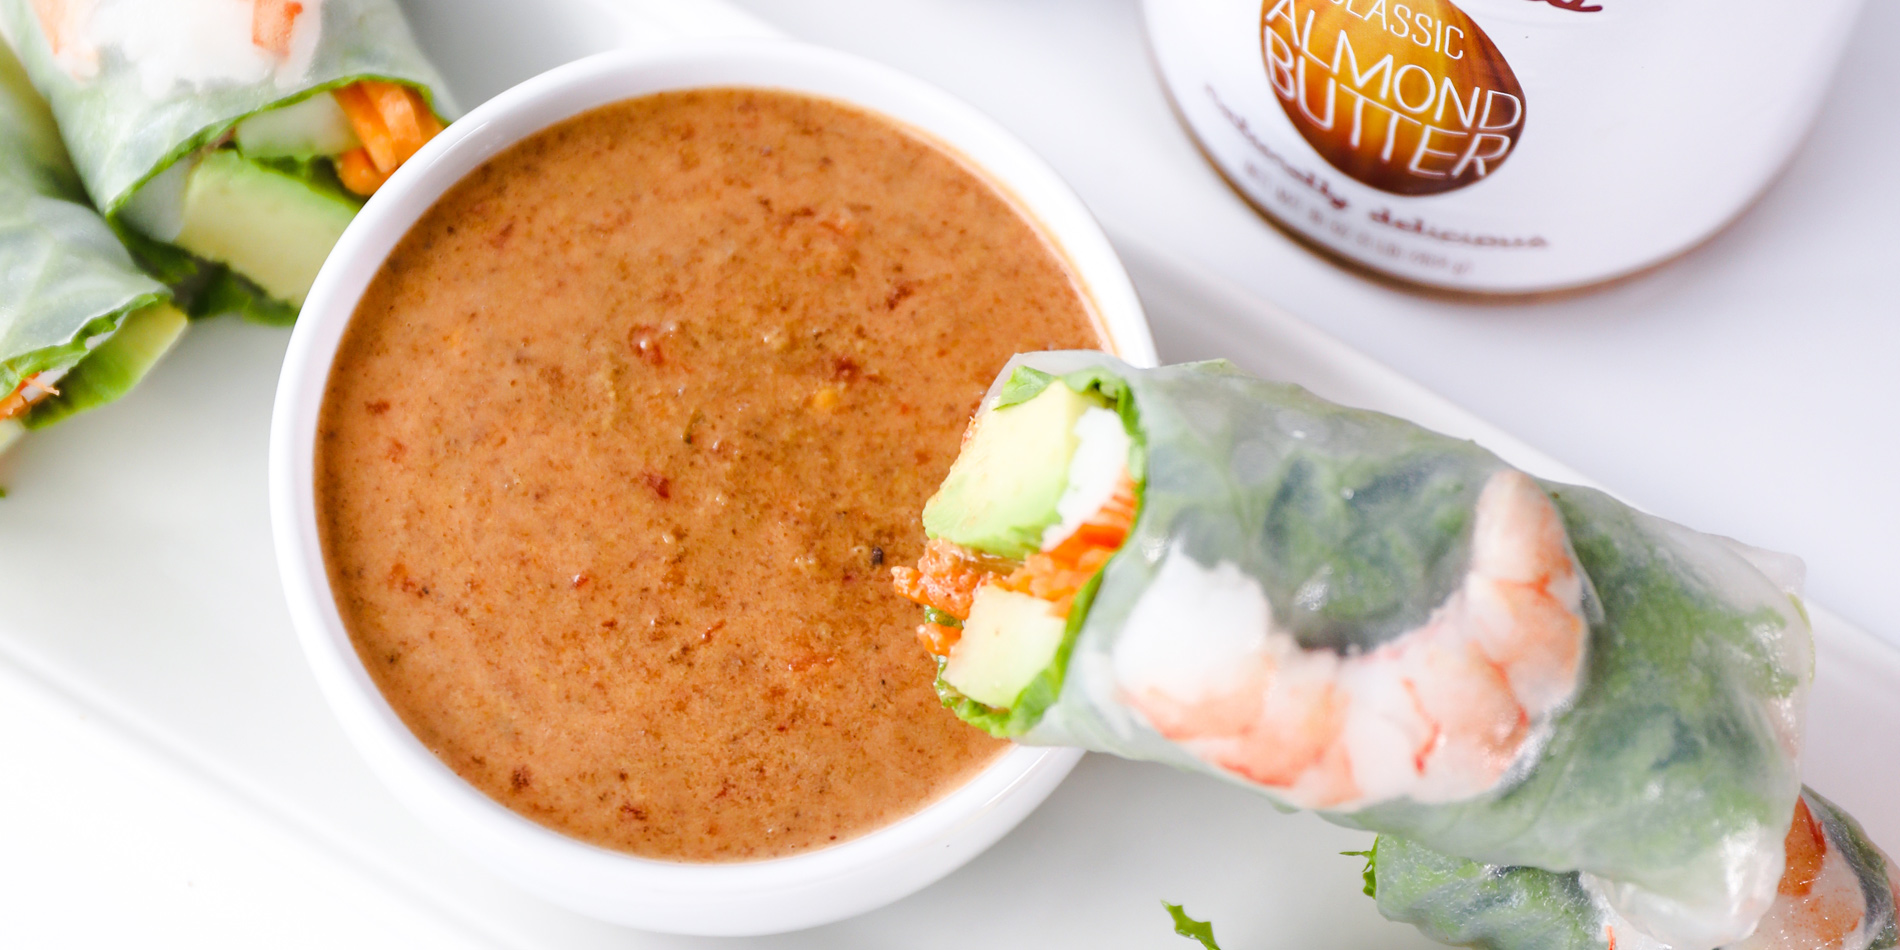 Ginger Almond Sauce with Vietnamese shrimp fresh rolls on white plate with ginger and peanut butter jar in white background